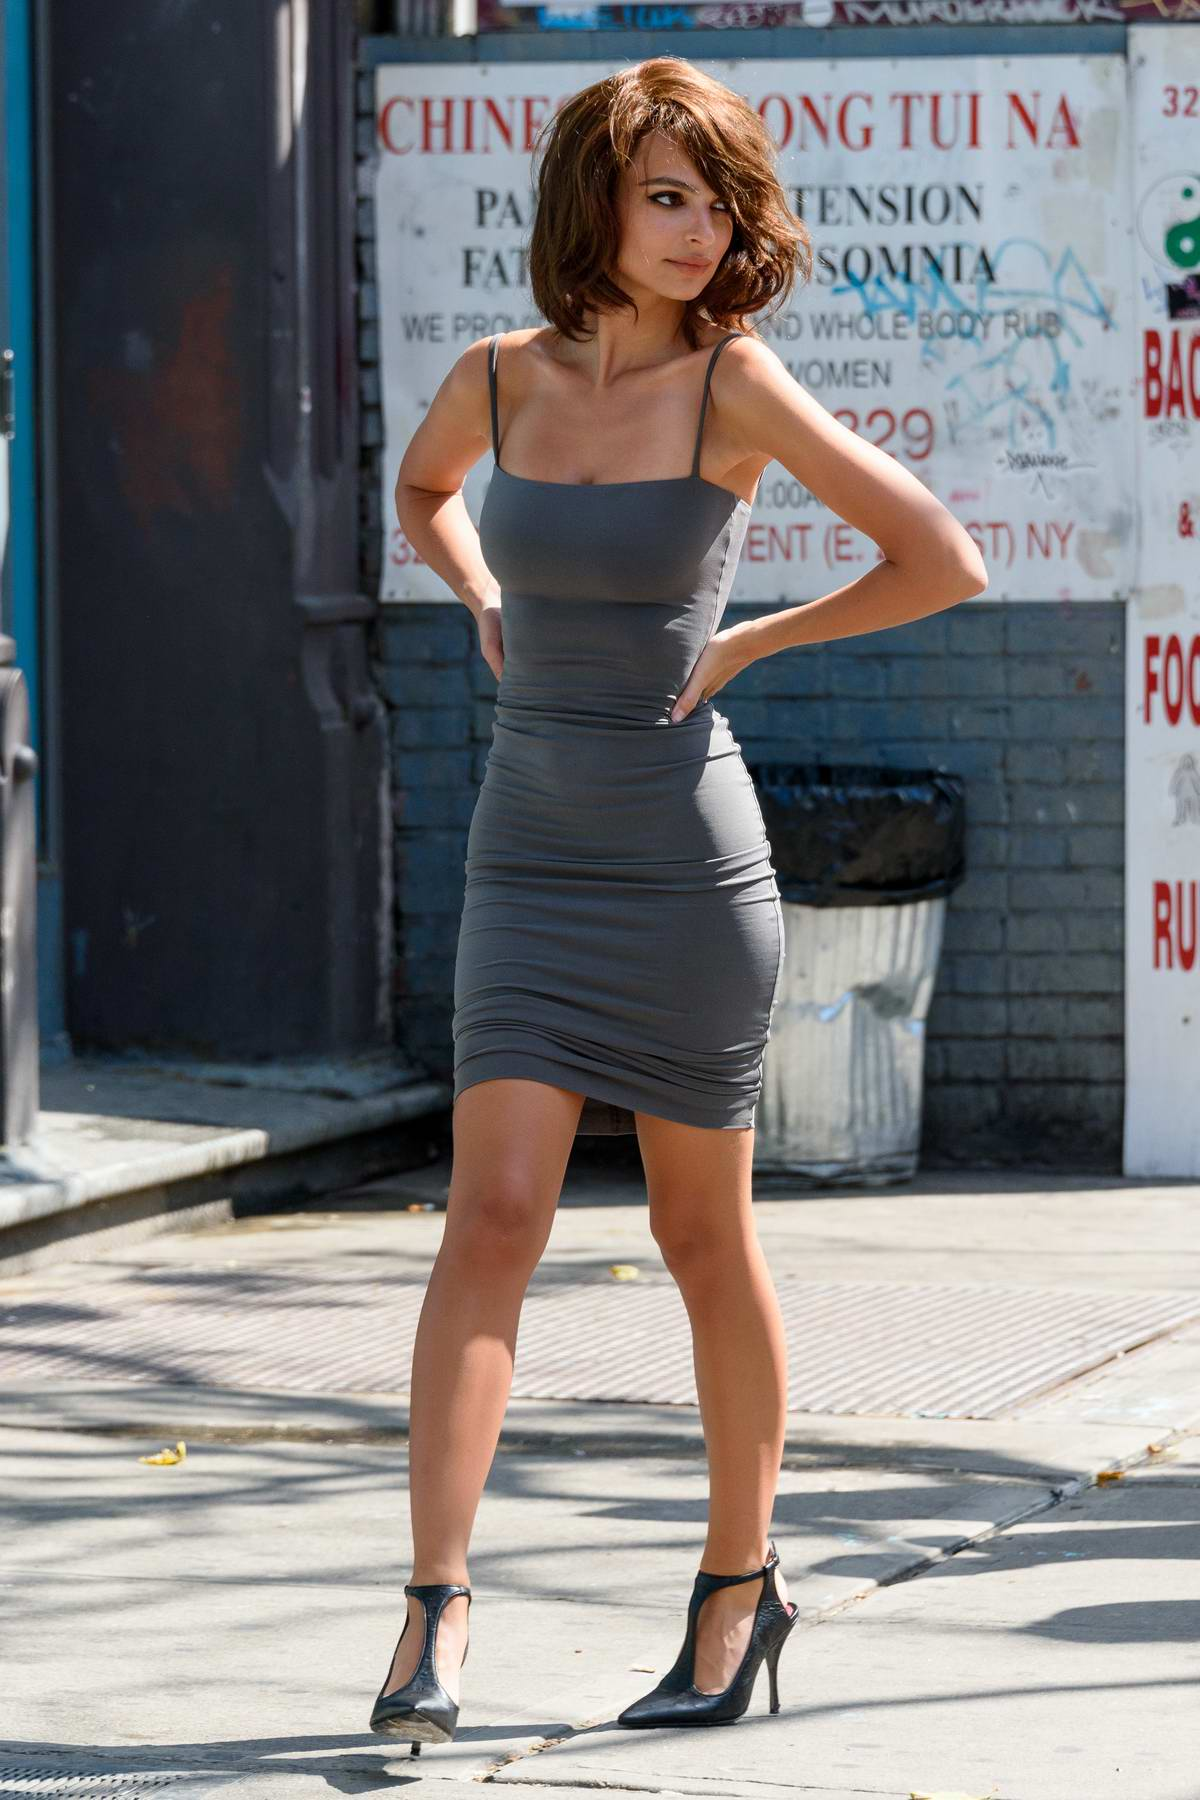 Emily Ratajkowski sports a short hair wig during a photoshoot with Jordan Barrett at The Bowery Hotel in New York City